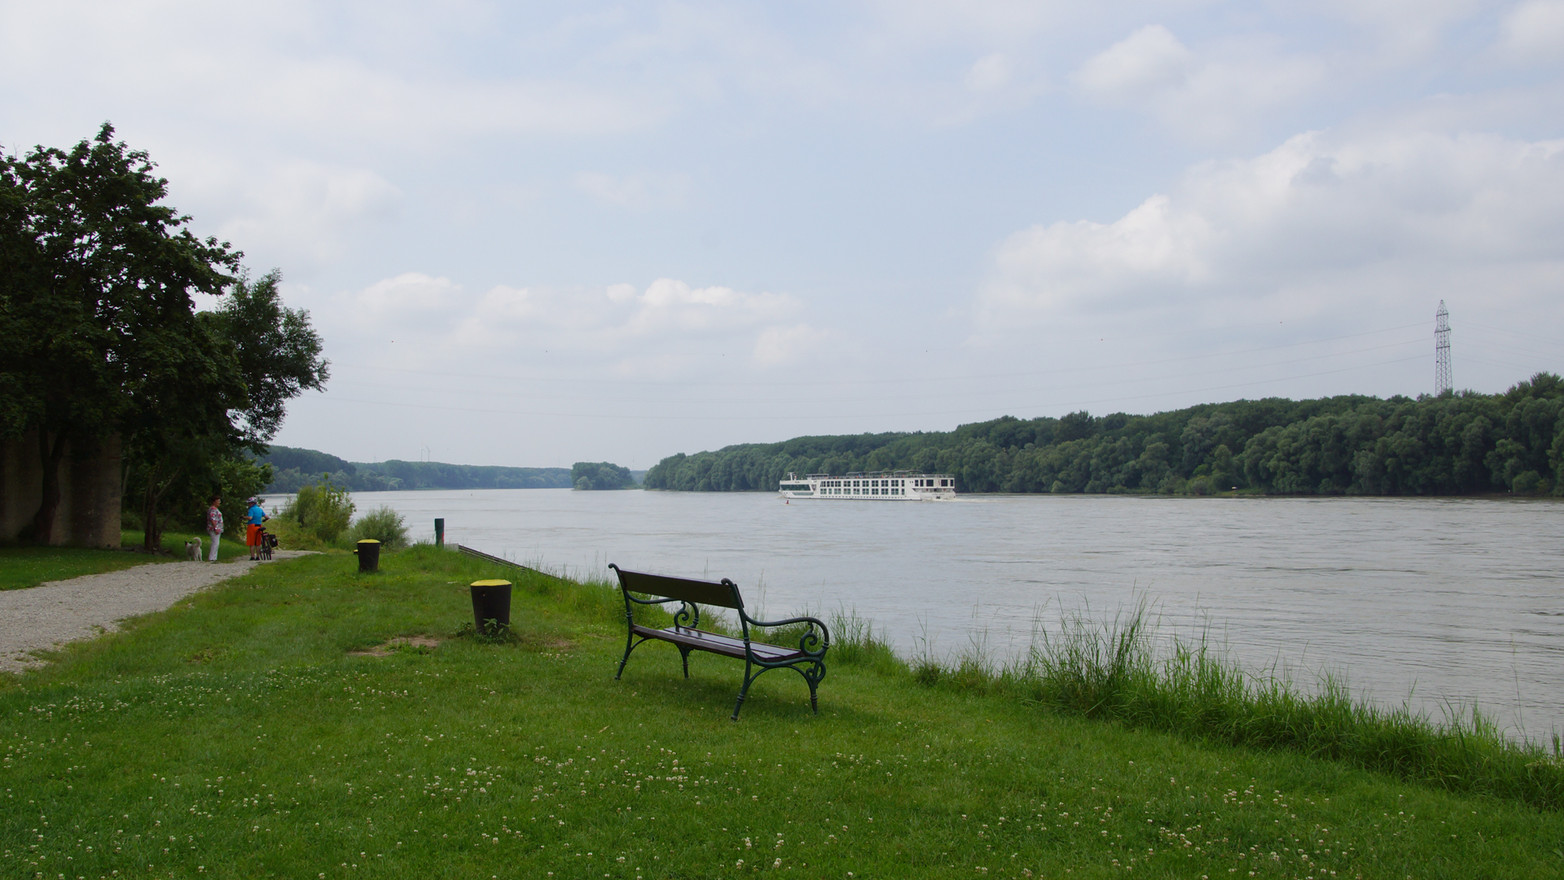 But our cycle route on EuroVelo 6 remains above all a beautiful long ride along the Danube, mostly in the open countryside.